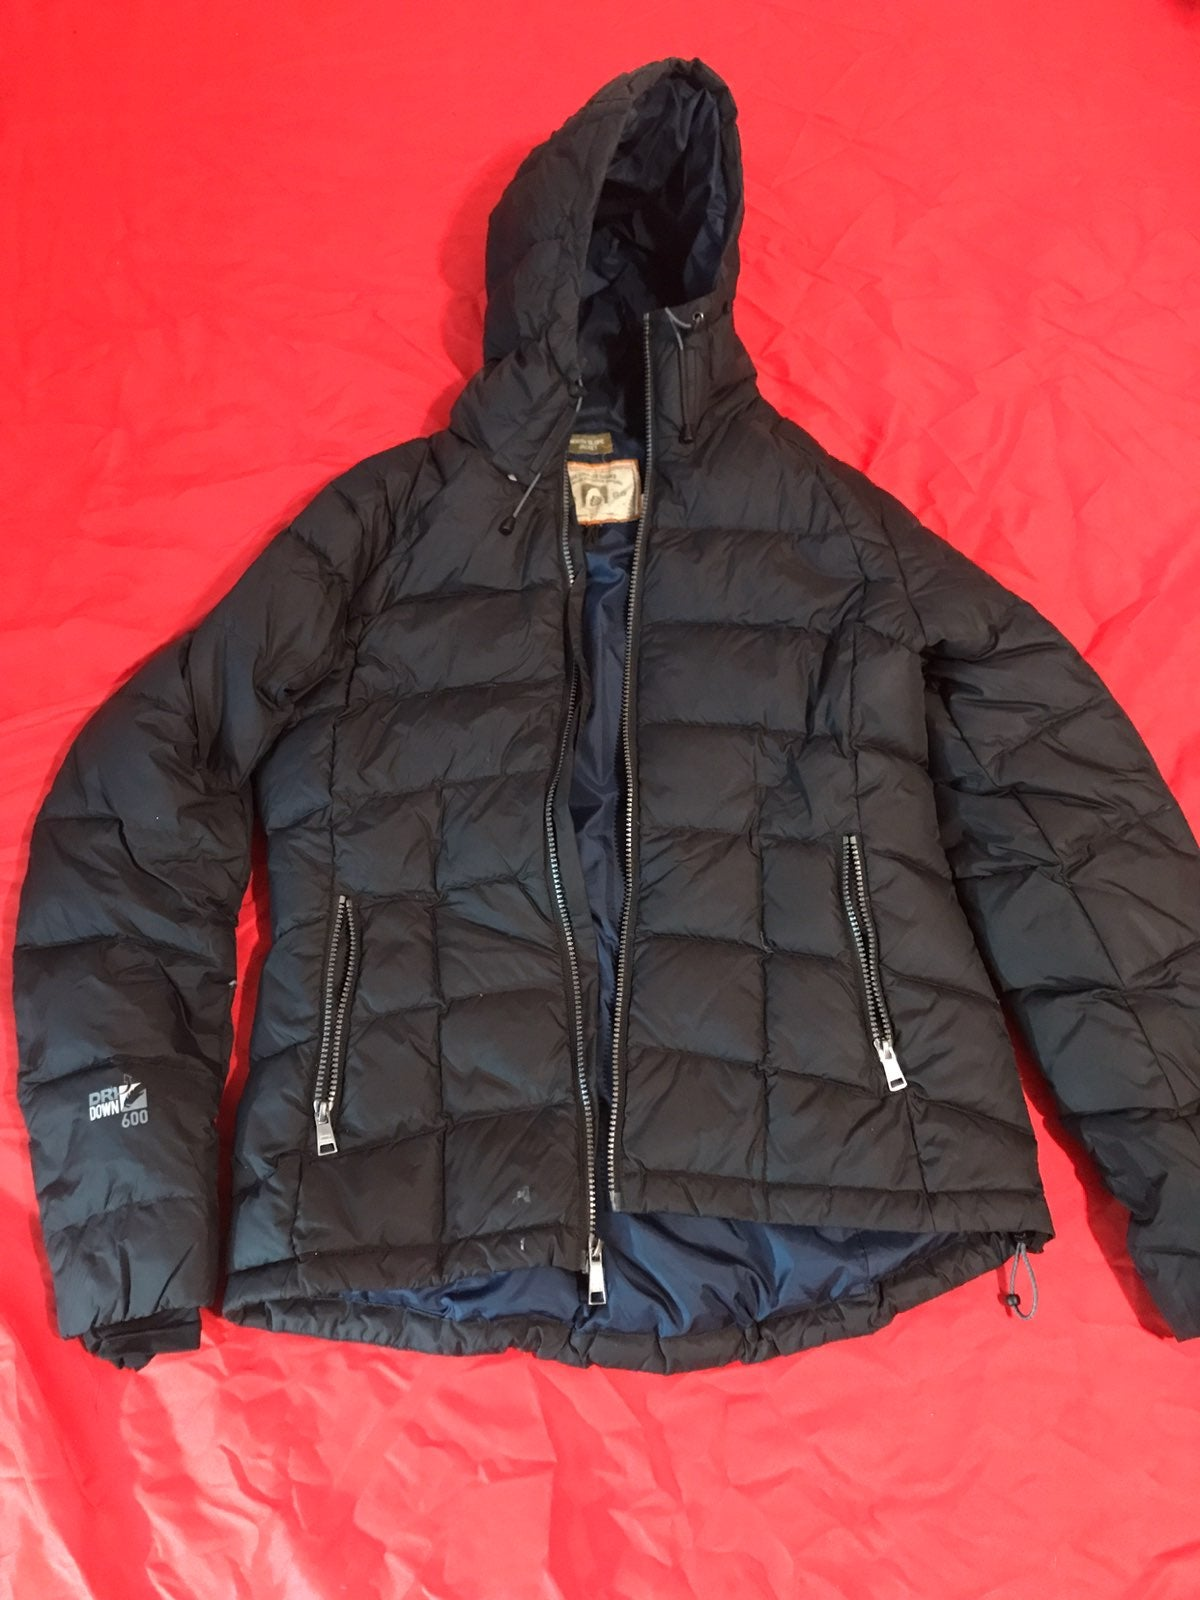 Sierra designs jacket size Medium